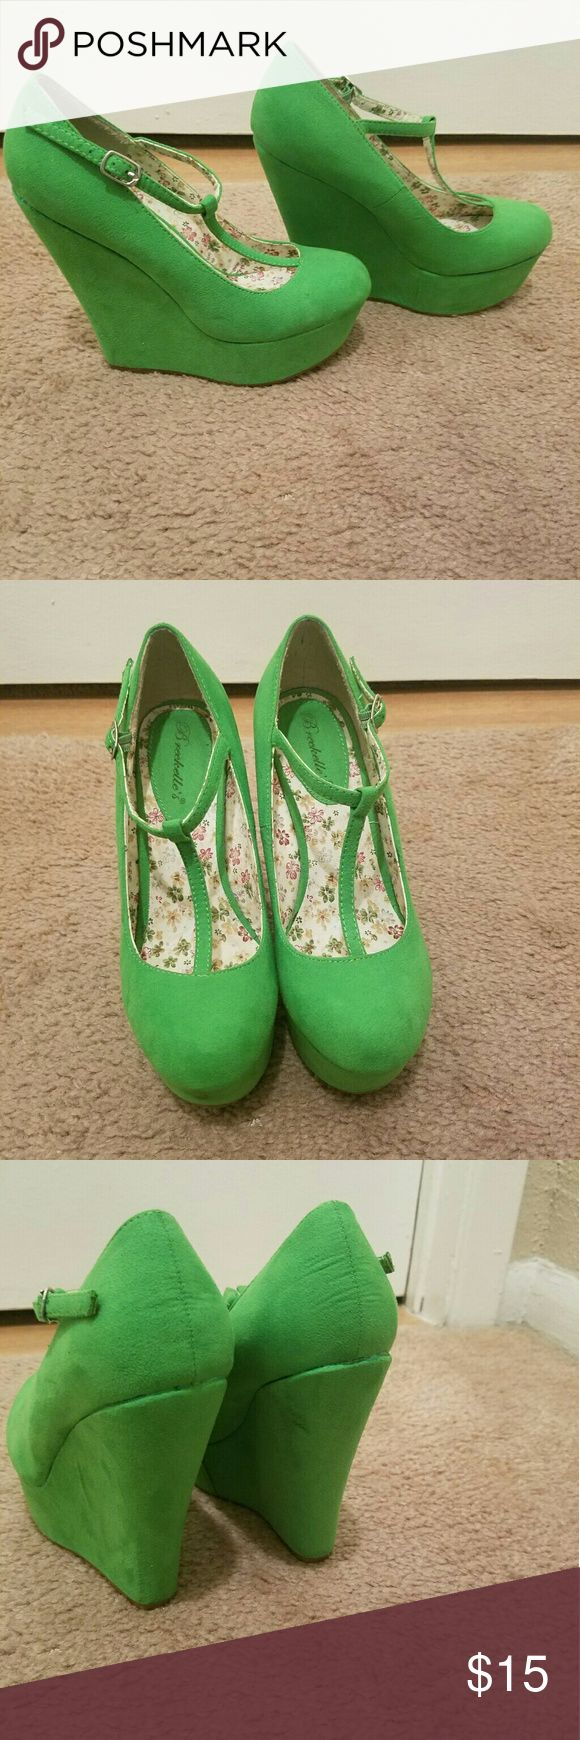 Lime-ish green wedges Never worn, suede wedges Breckelles Shoes Wedges